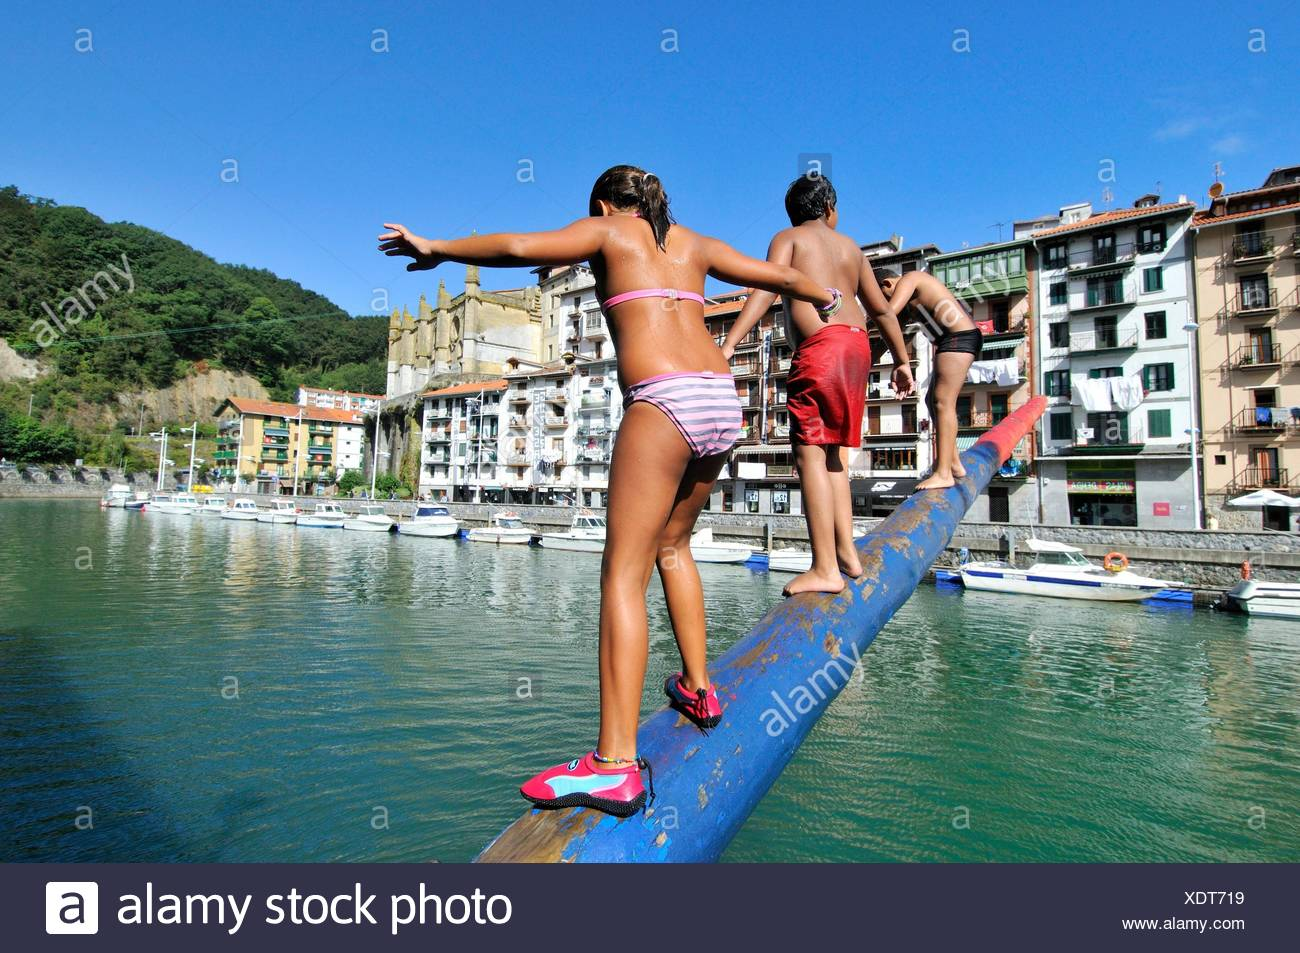 Cucaña (spanish), Greasy pole, grease pole or greased pole refers to a pole that has been made slippery and thus difficult to grip. Artibai river in - Stock Image